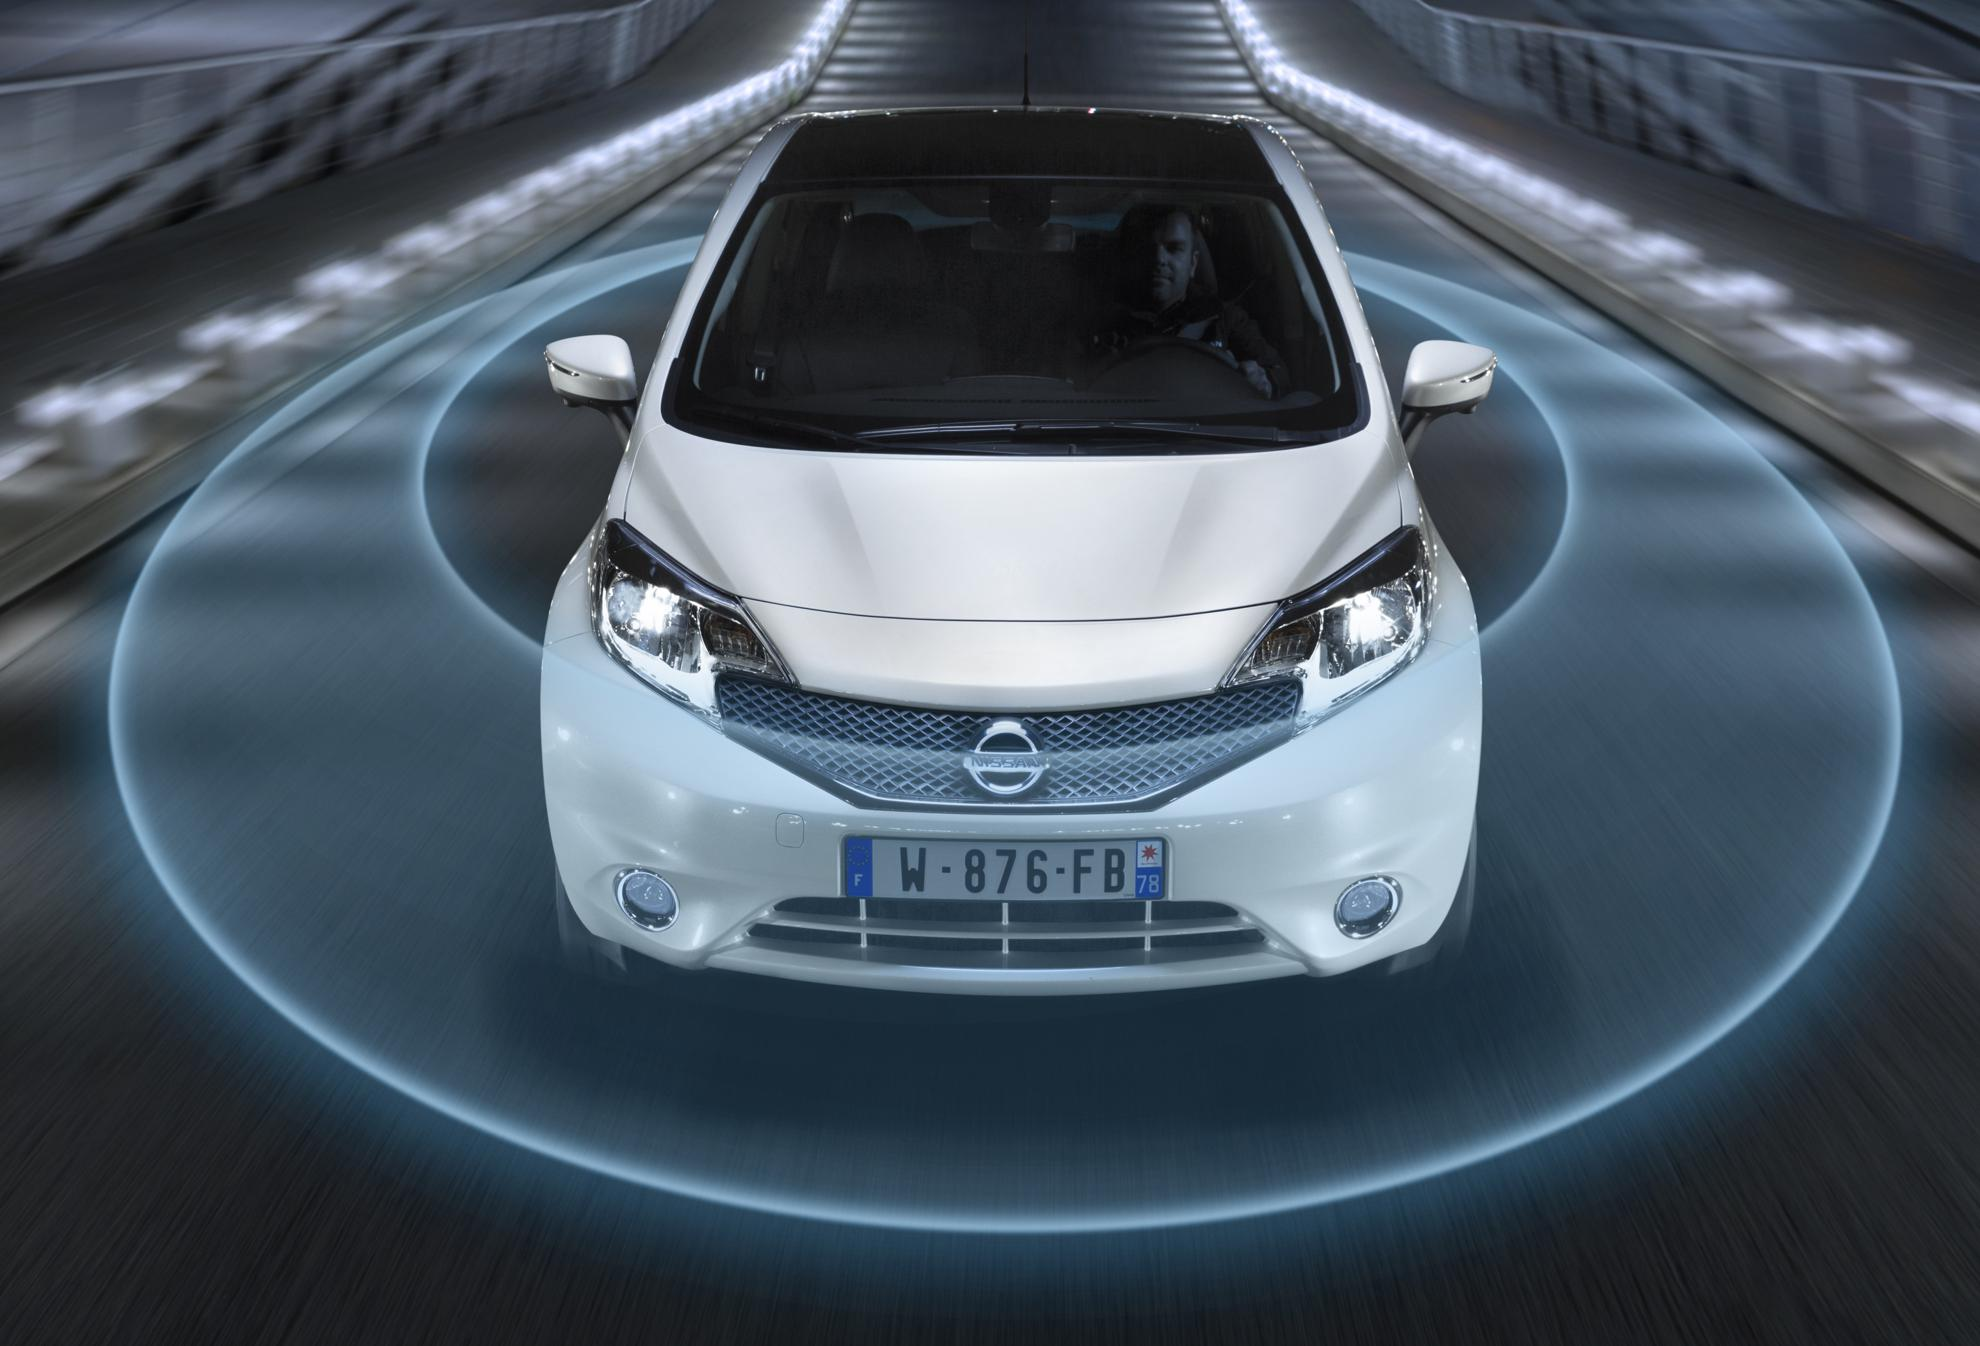 Nissan Safety Shield Breakthrough Technology For The B